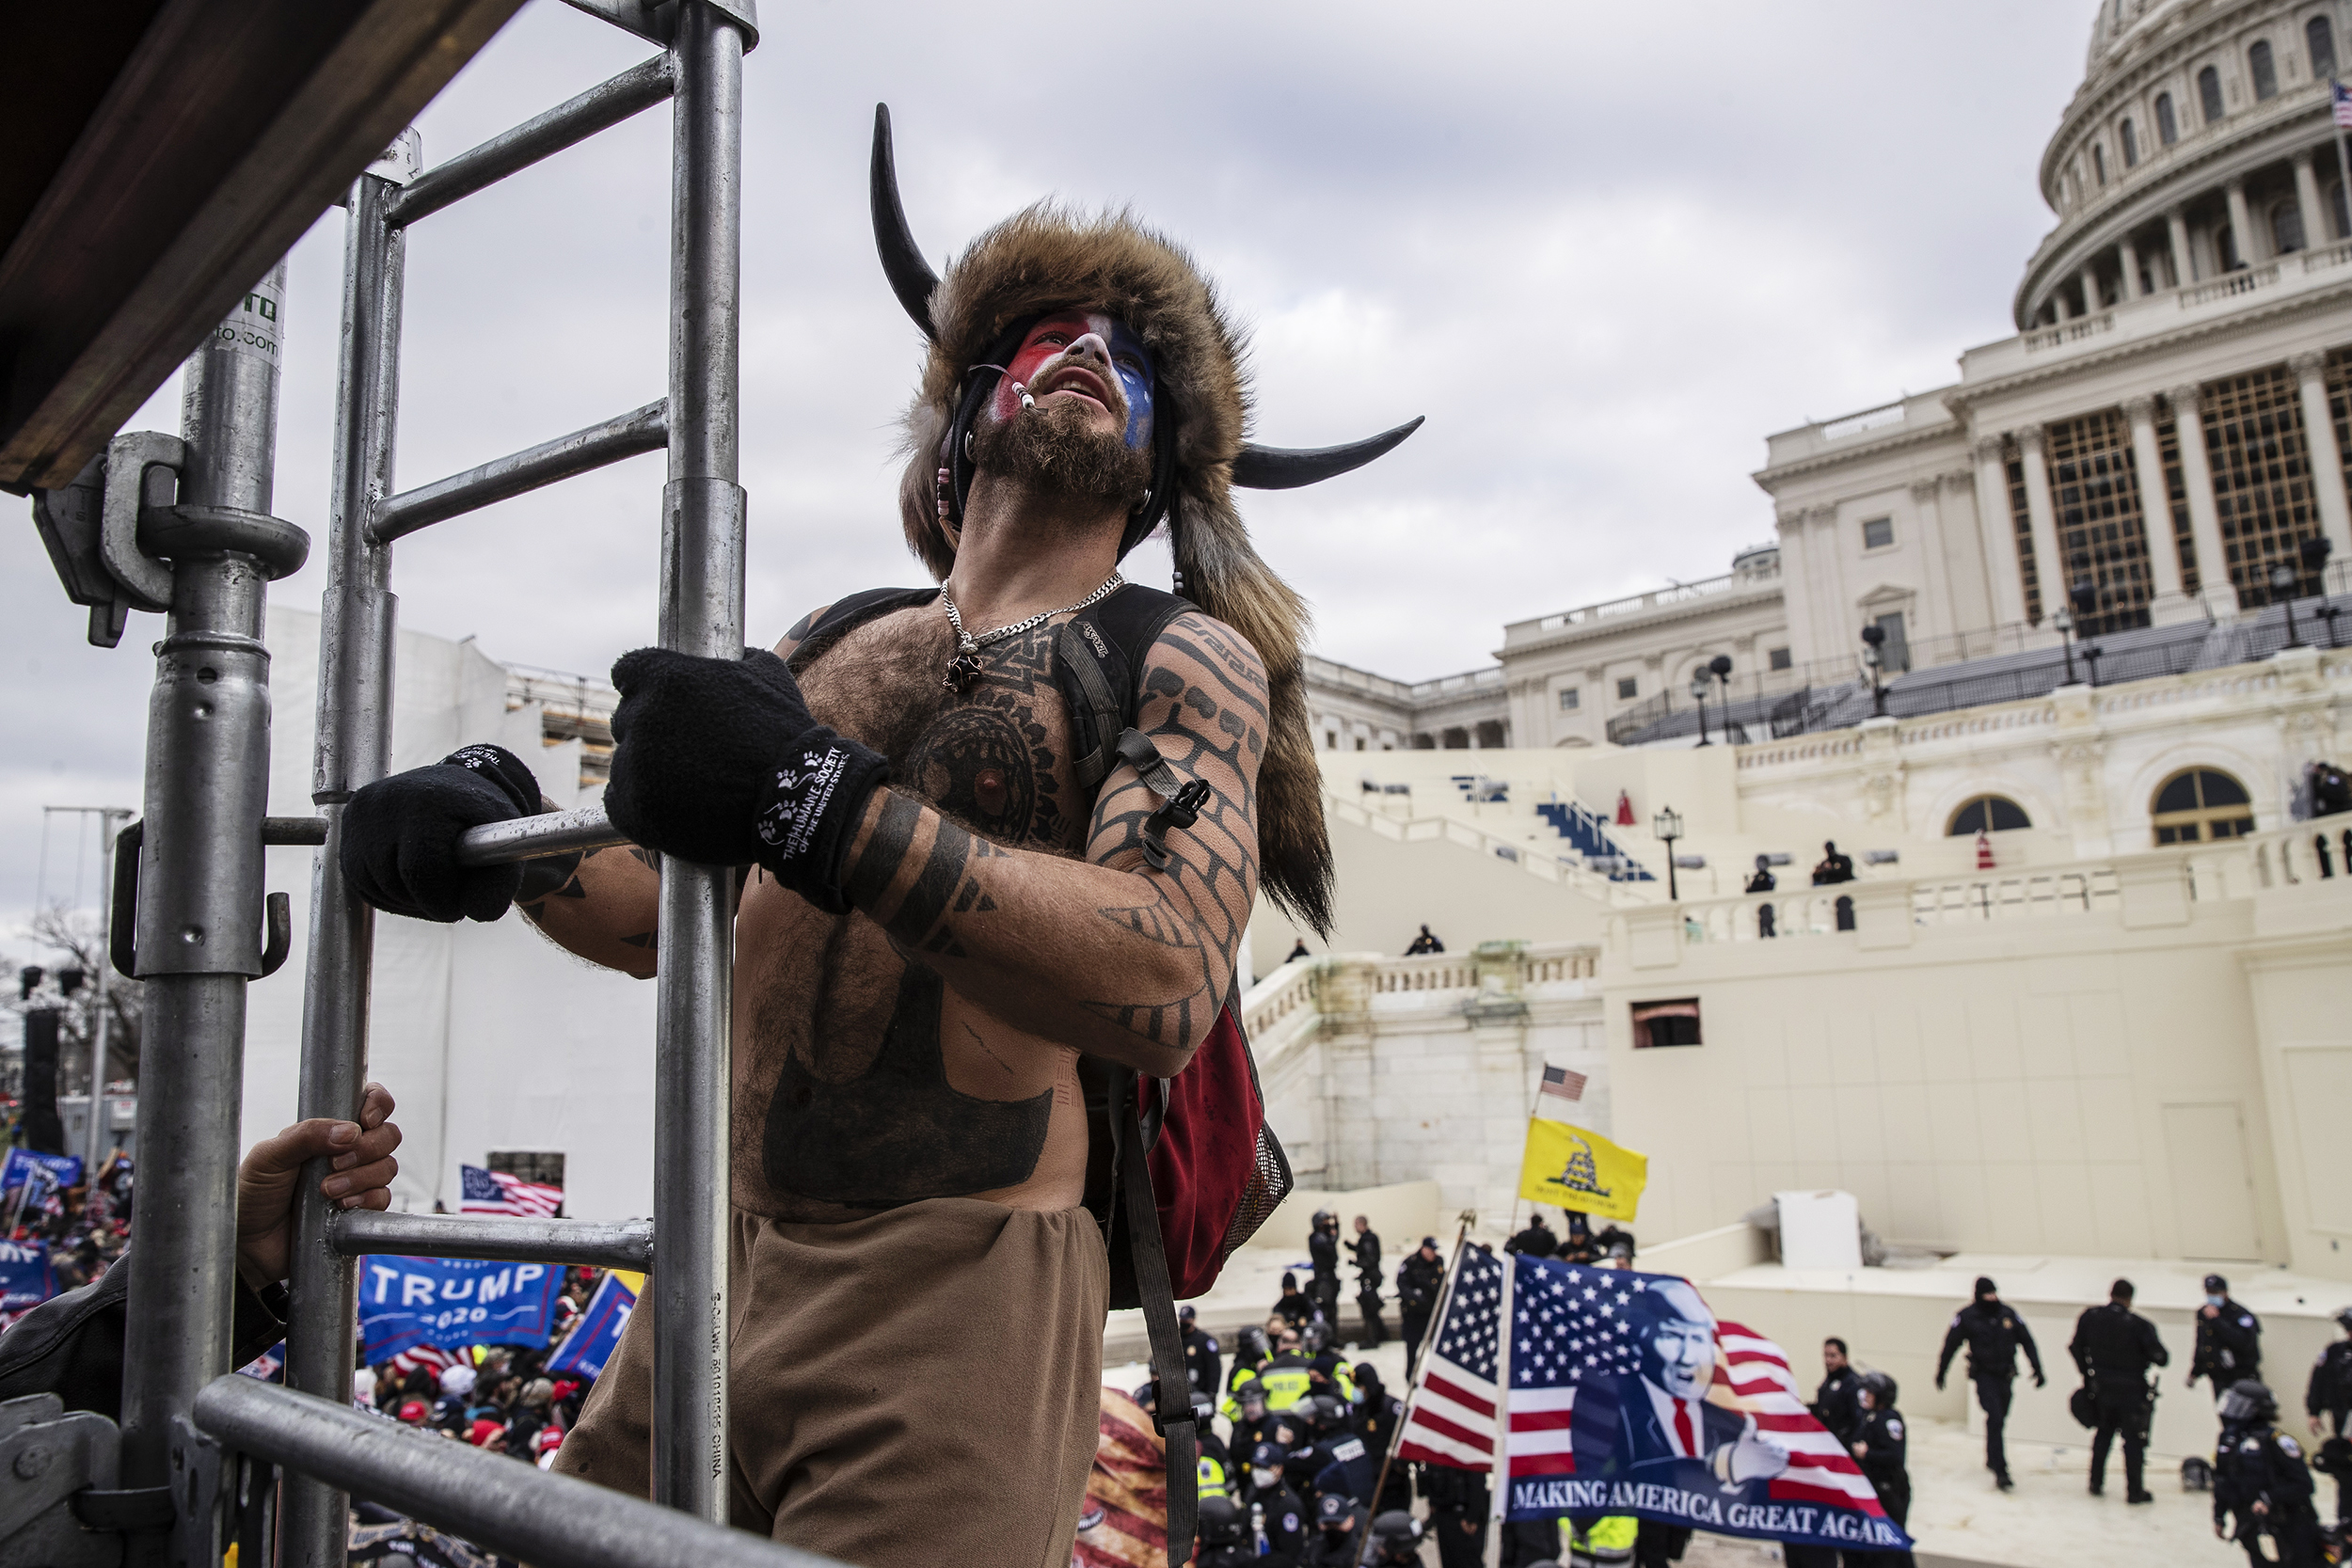 Capitol-rioters-like-the-'QAnon-Shaman'-looked-ridiculous.-That-was-by-design.